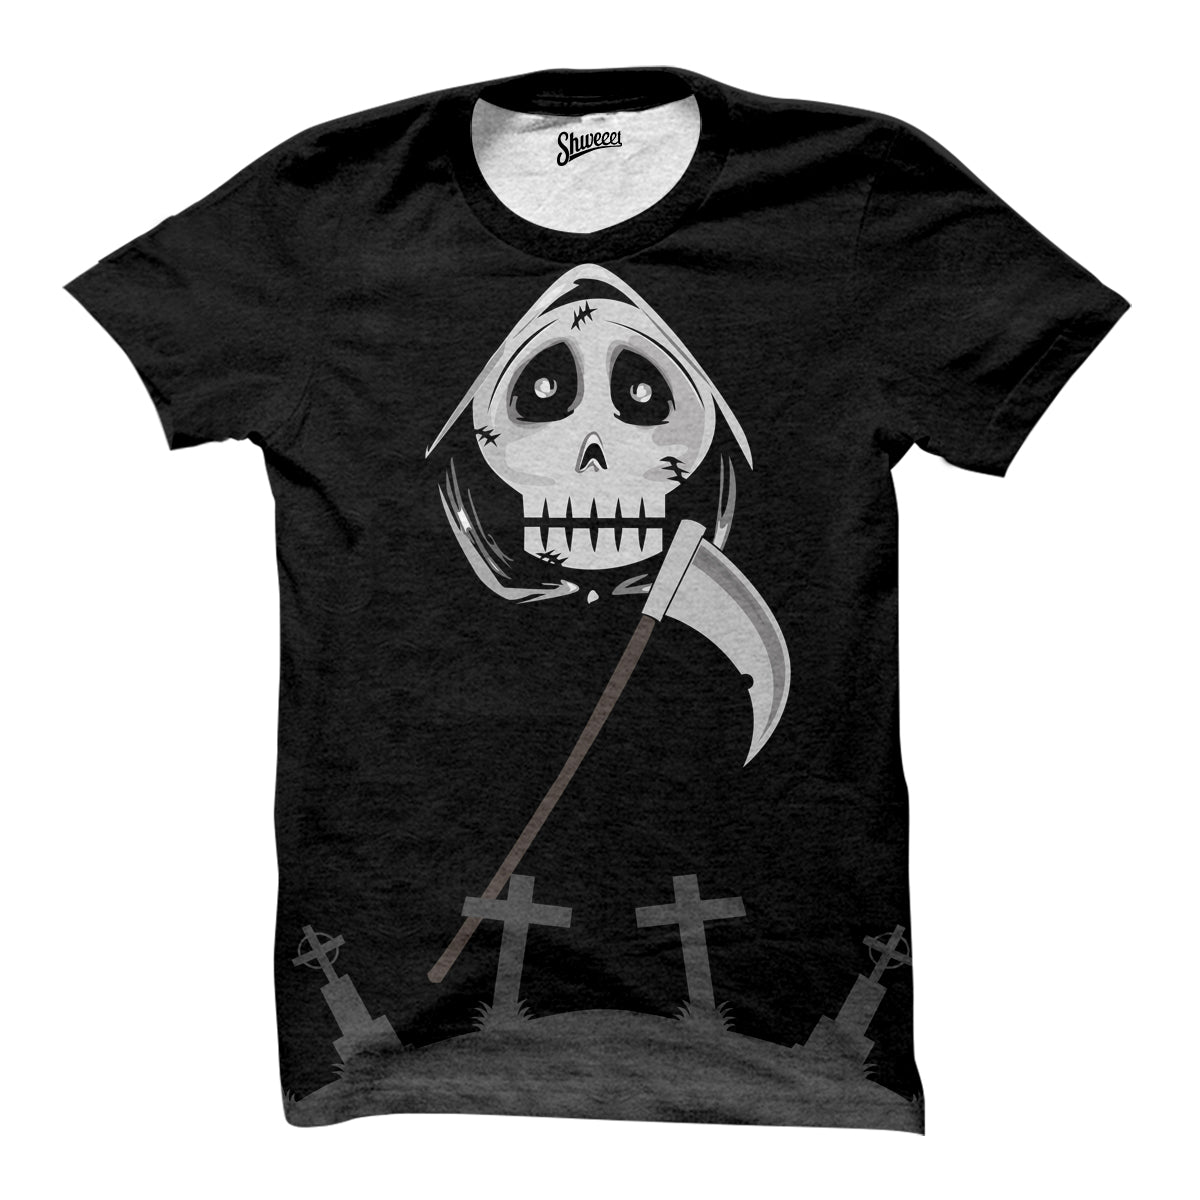 The Reaper T-shirt - Shweeet